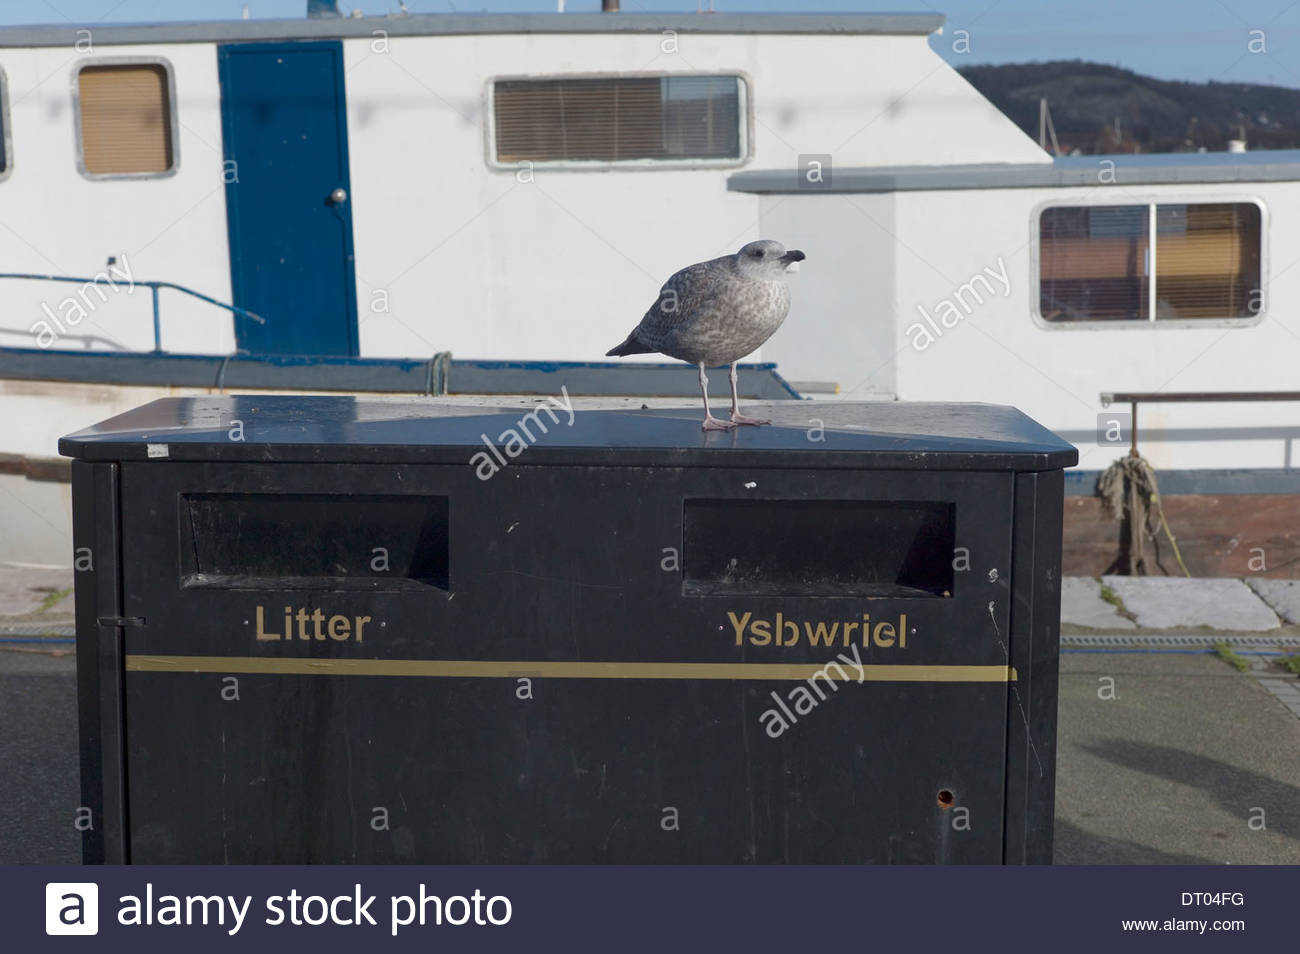 Seagull perched on a litter bin, Conwy Harbour, North Wales. UK - Stock Image